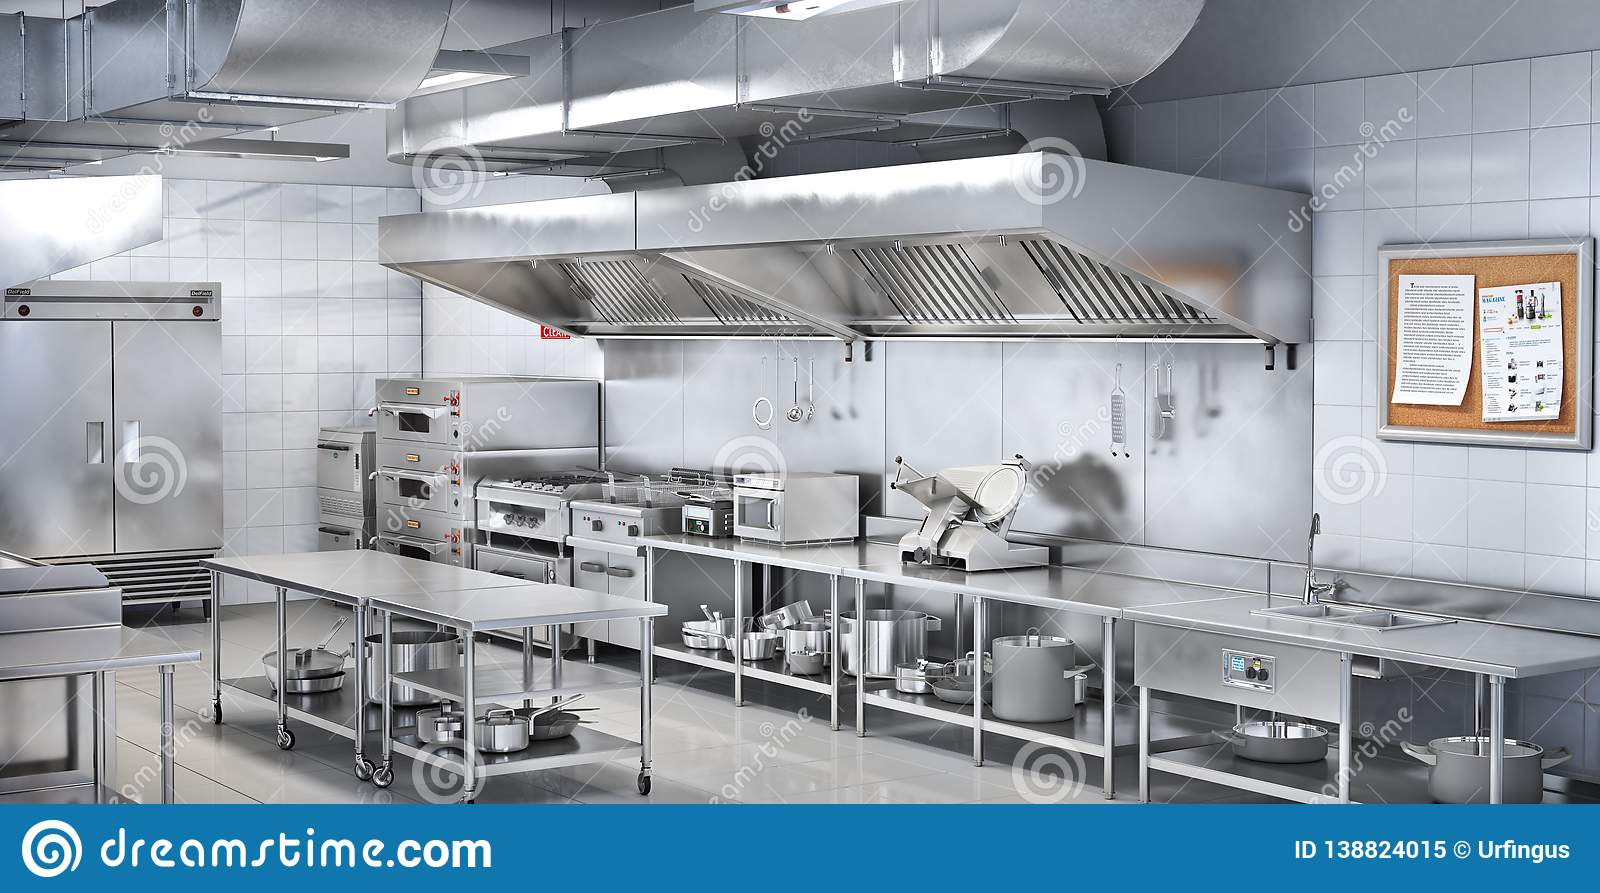 Industrial kitchen. Restaurant kitchen